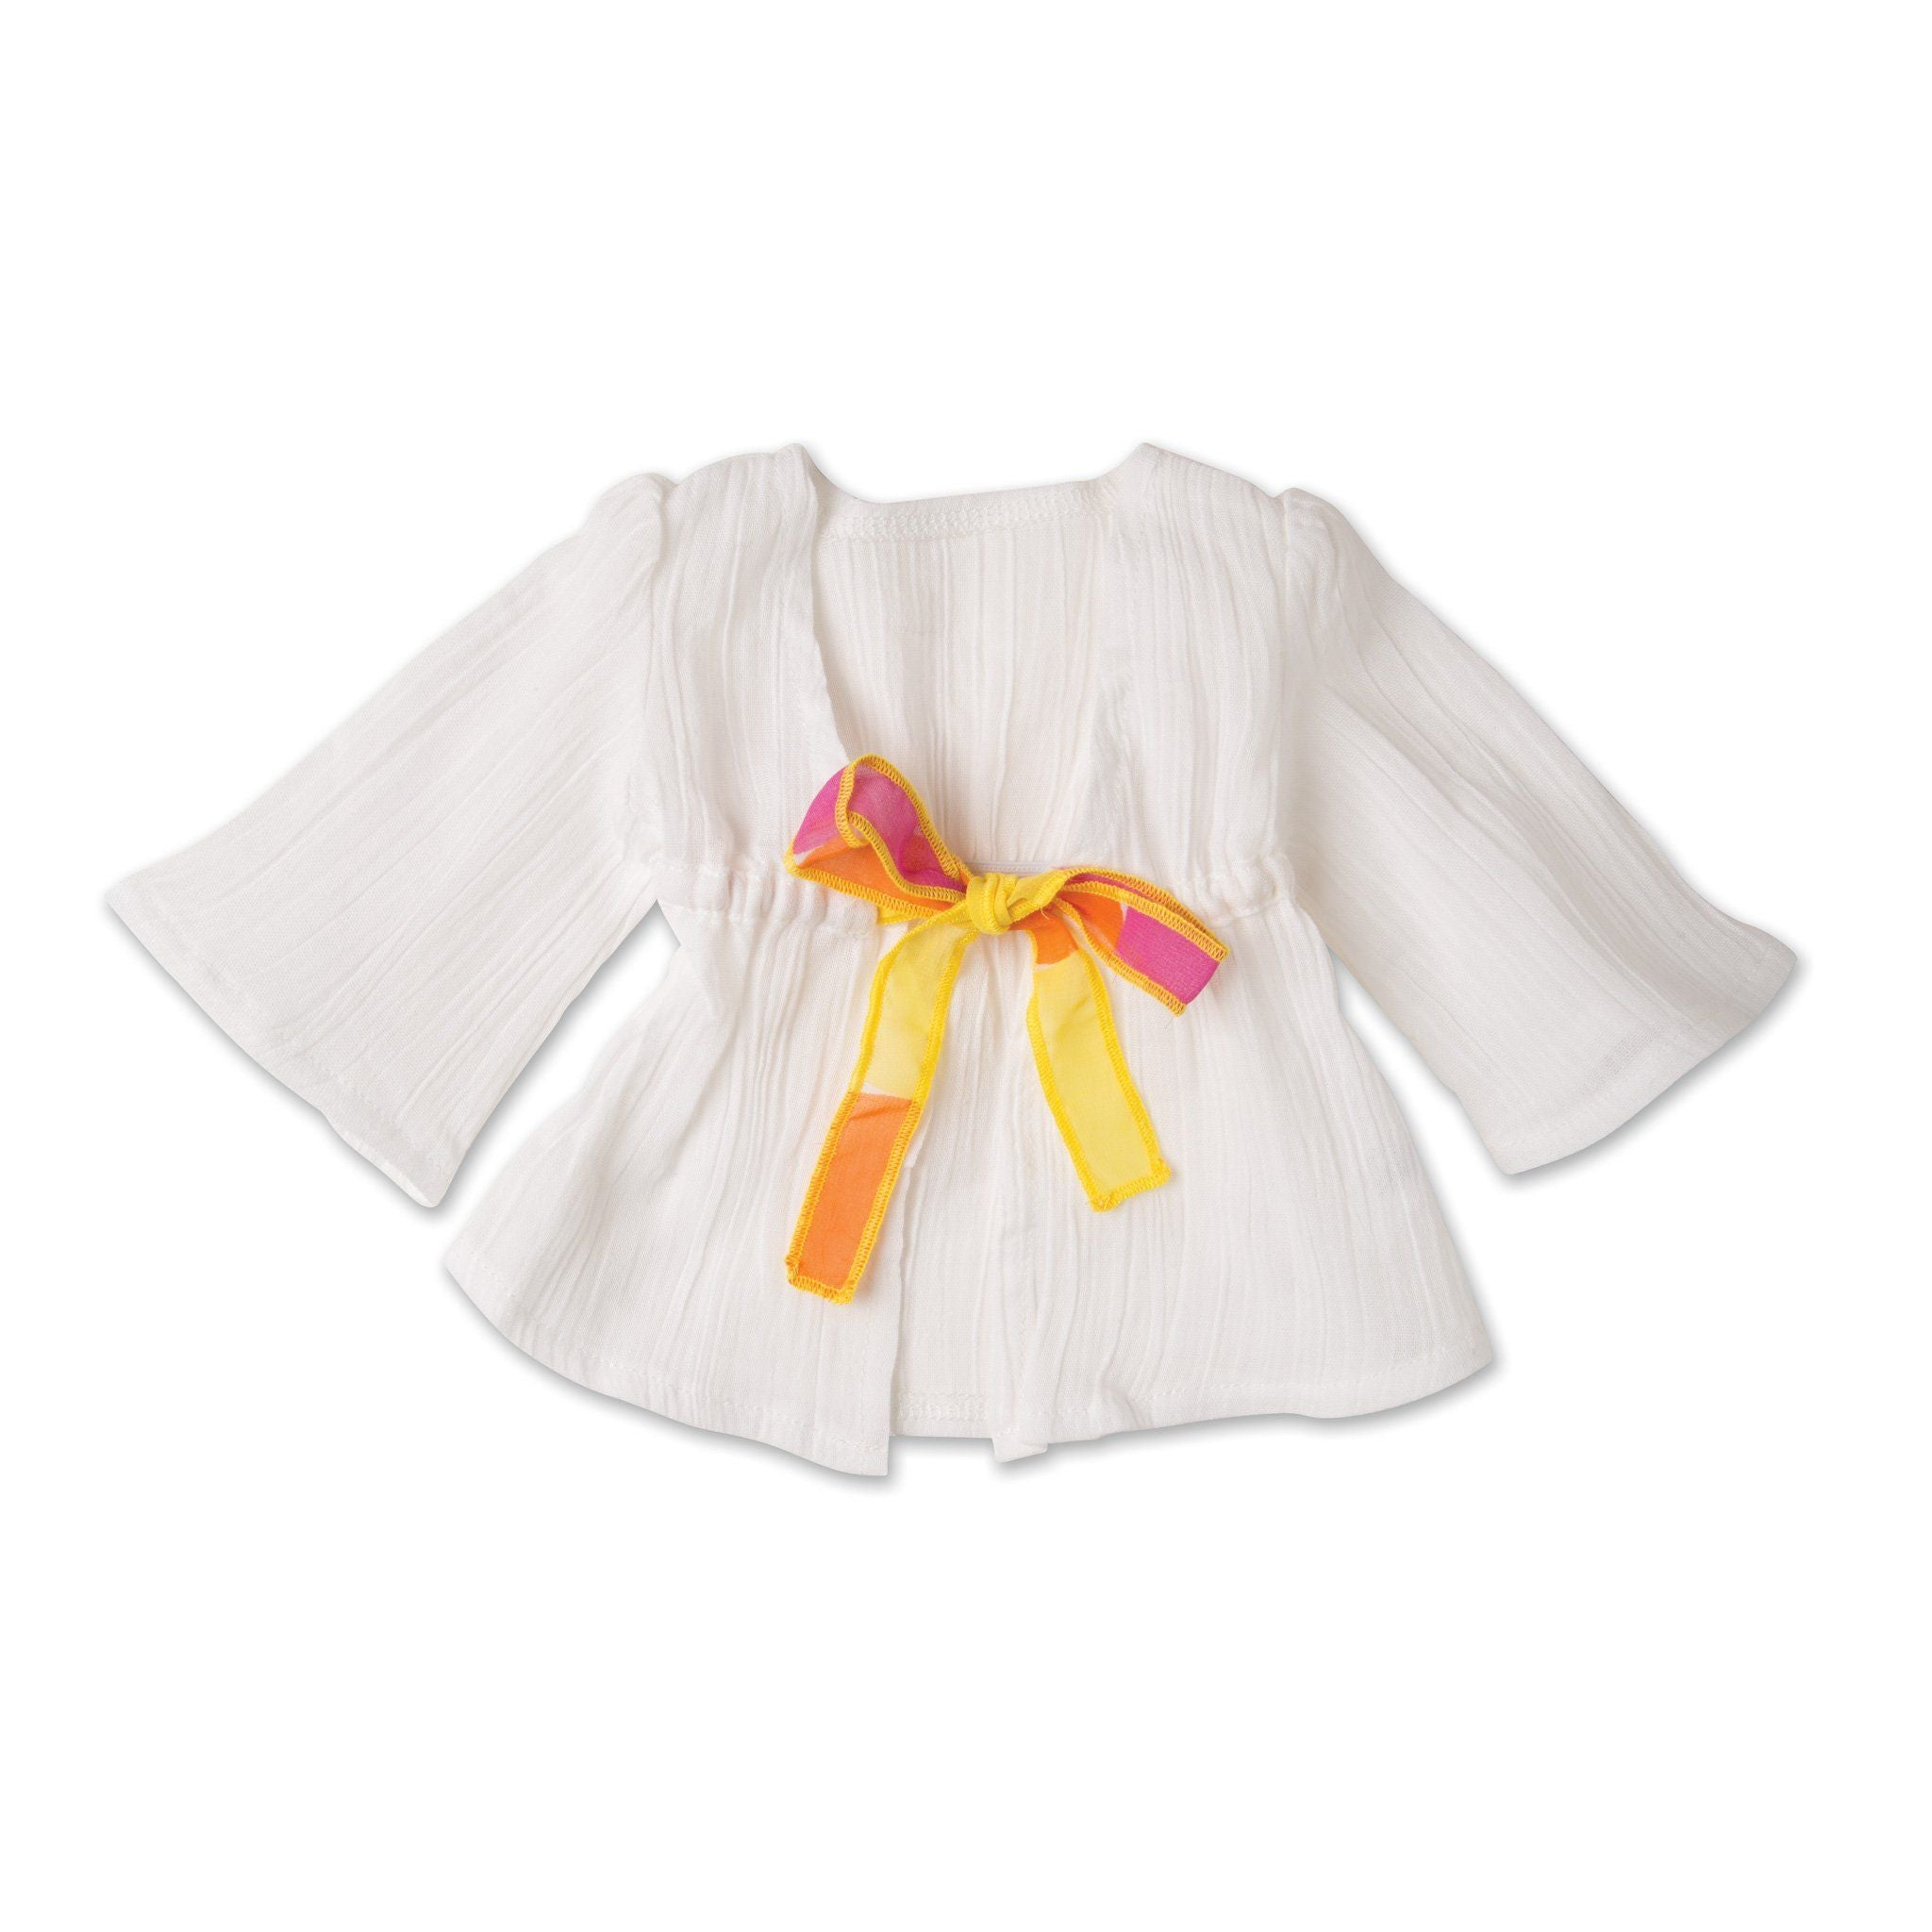 Shoreline Sun white cotton beach cover-up with polka dot tie fits all 18 inch dolls.